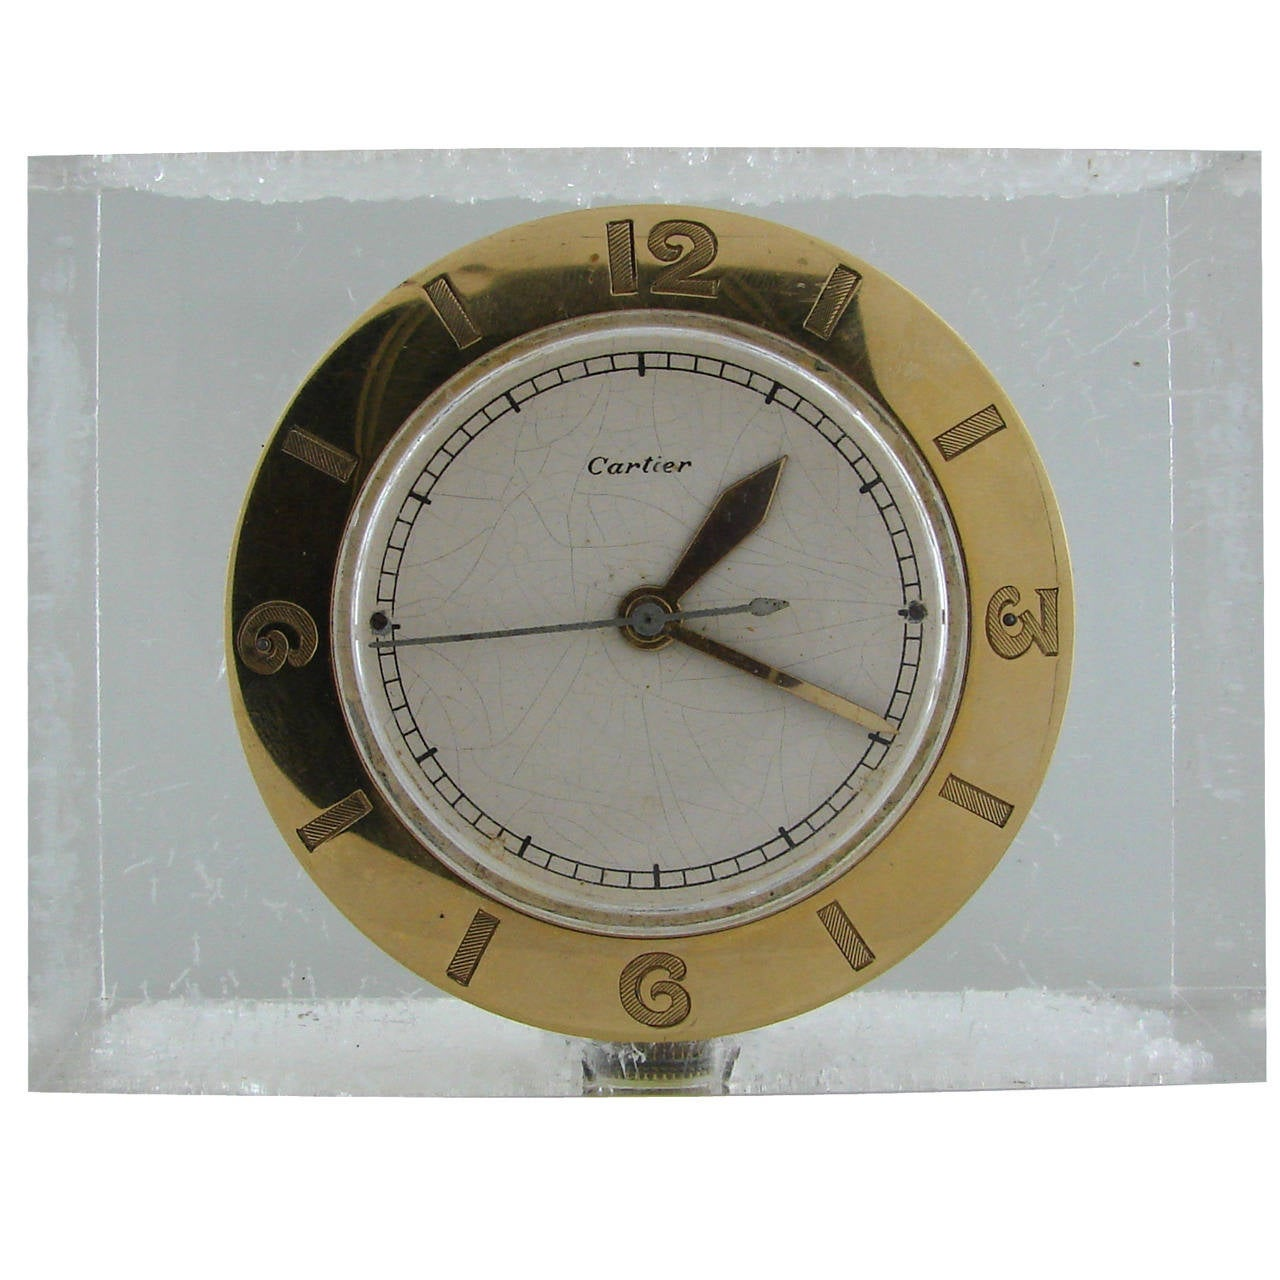 Cartier Lucite and Yellow Gold Desk Clock with Lecoultre Movement circa 1950s